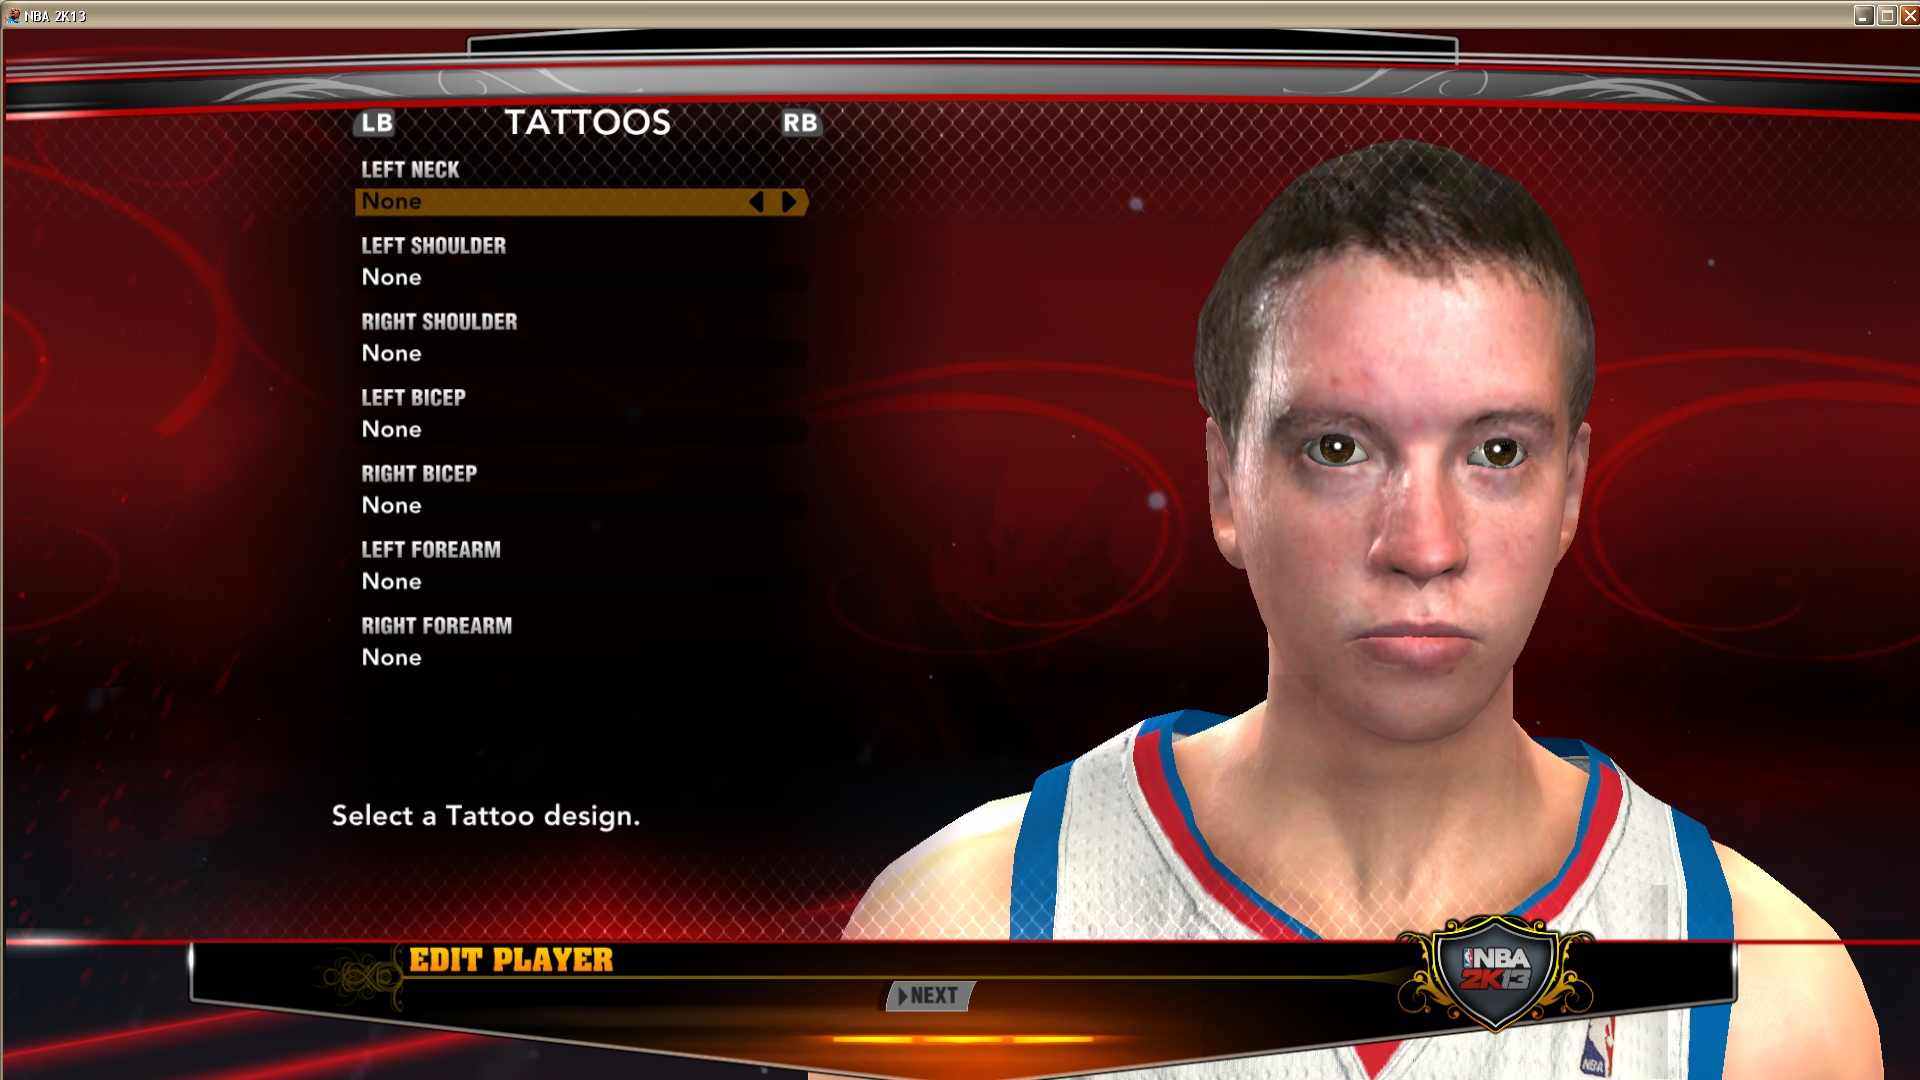 Andrew Hartsock (2K11 to 2K13 Conversion)